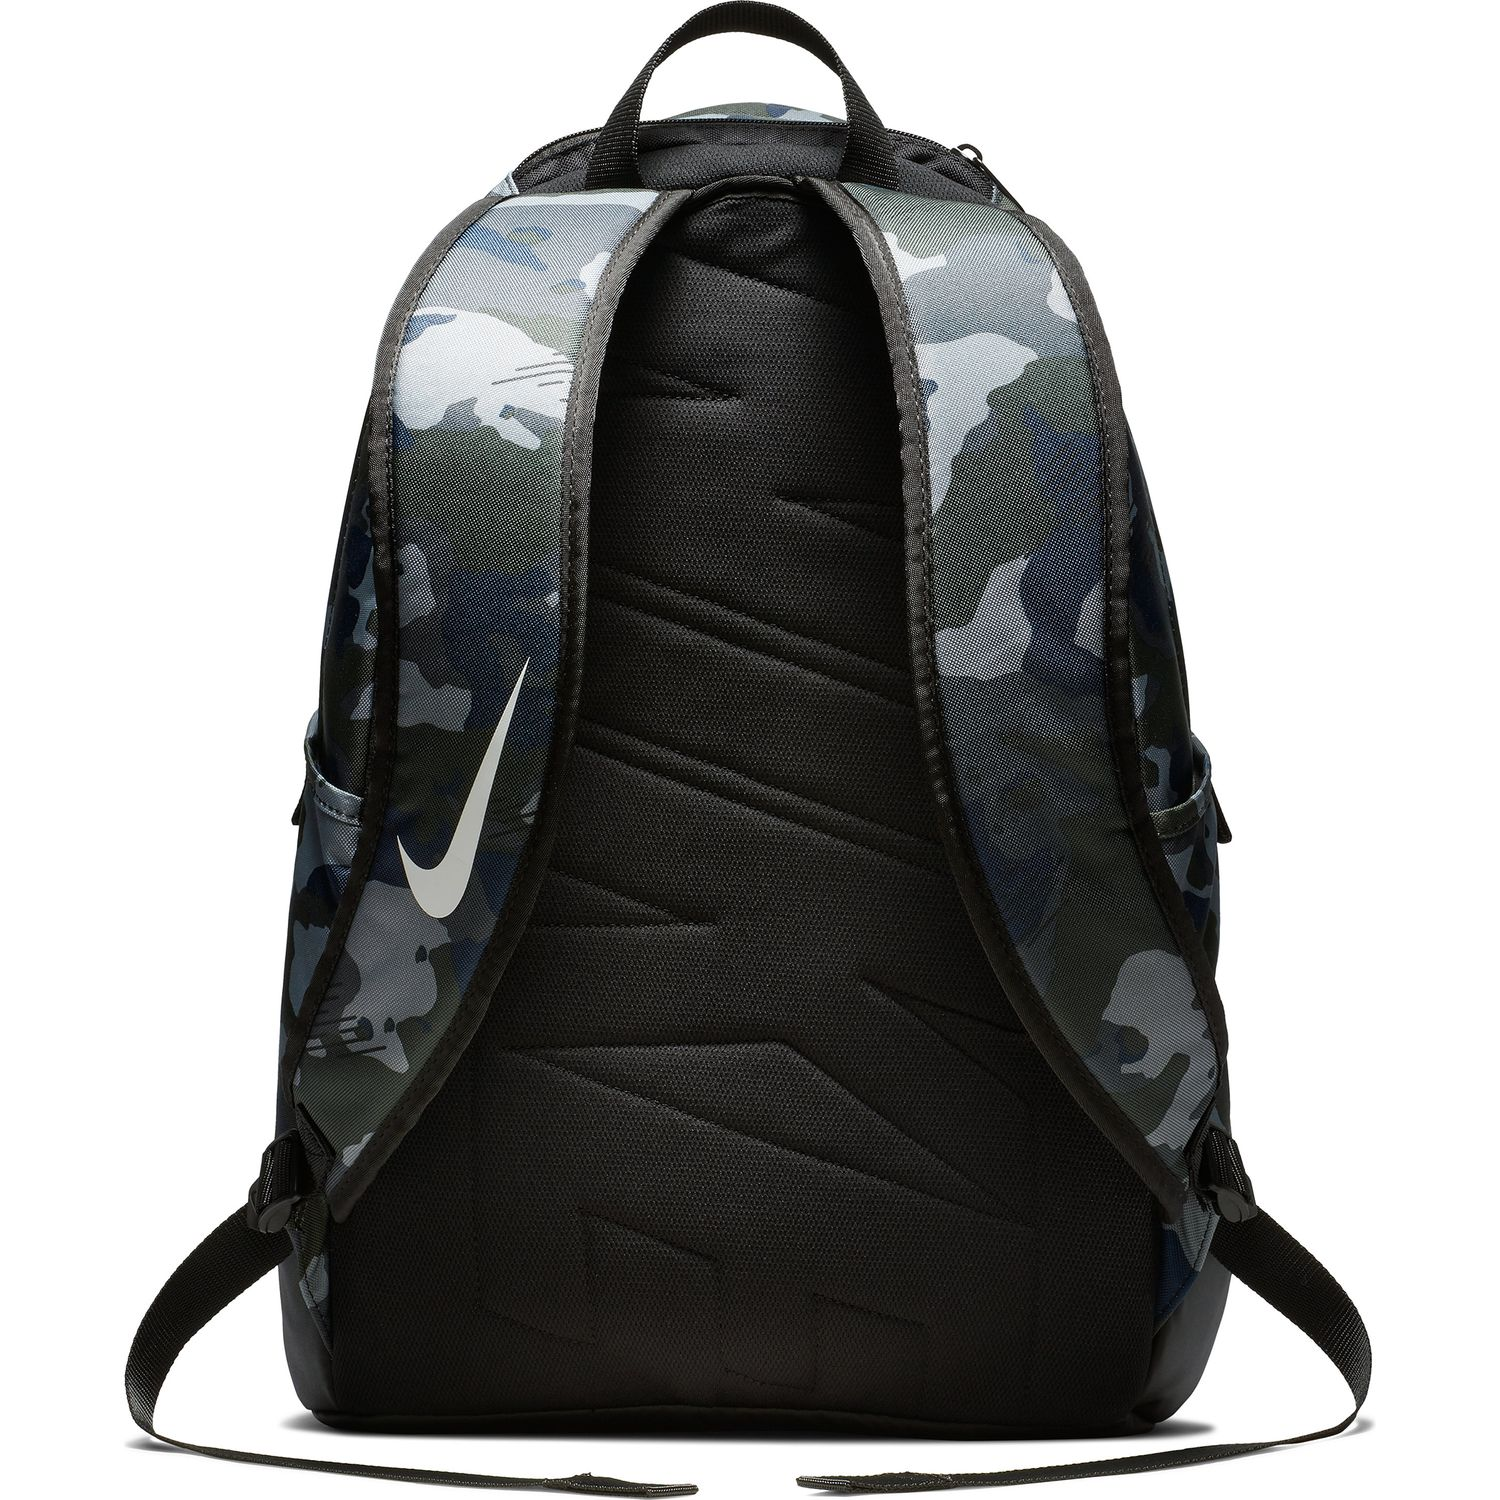 03e7a14842 Nike Backpacks